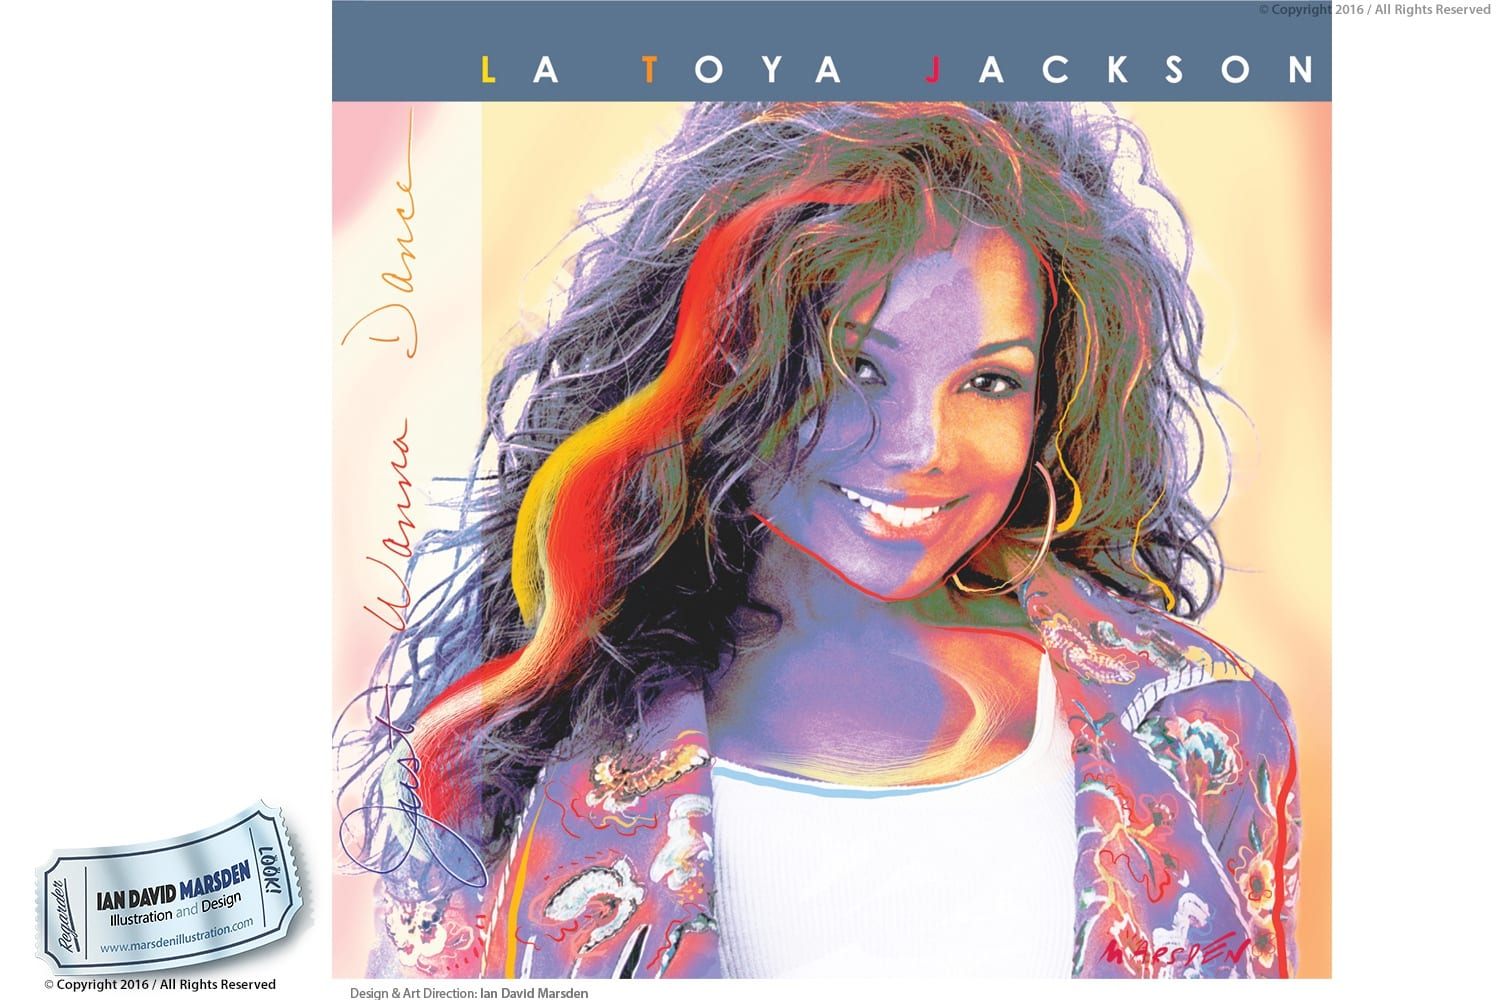 Album Design for Latoya Jackson